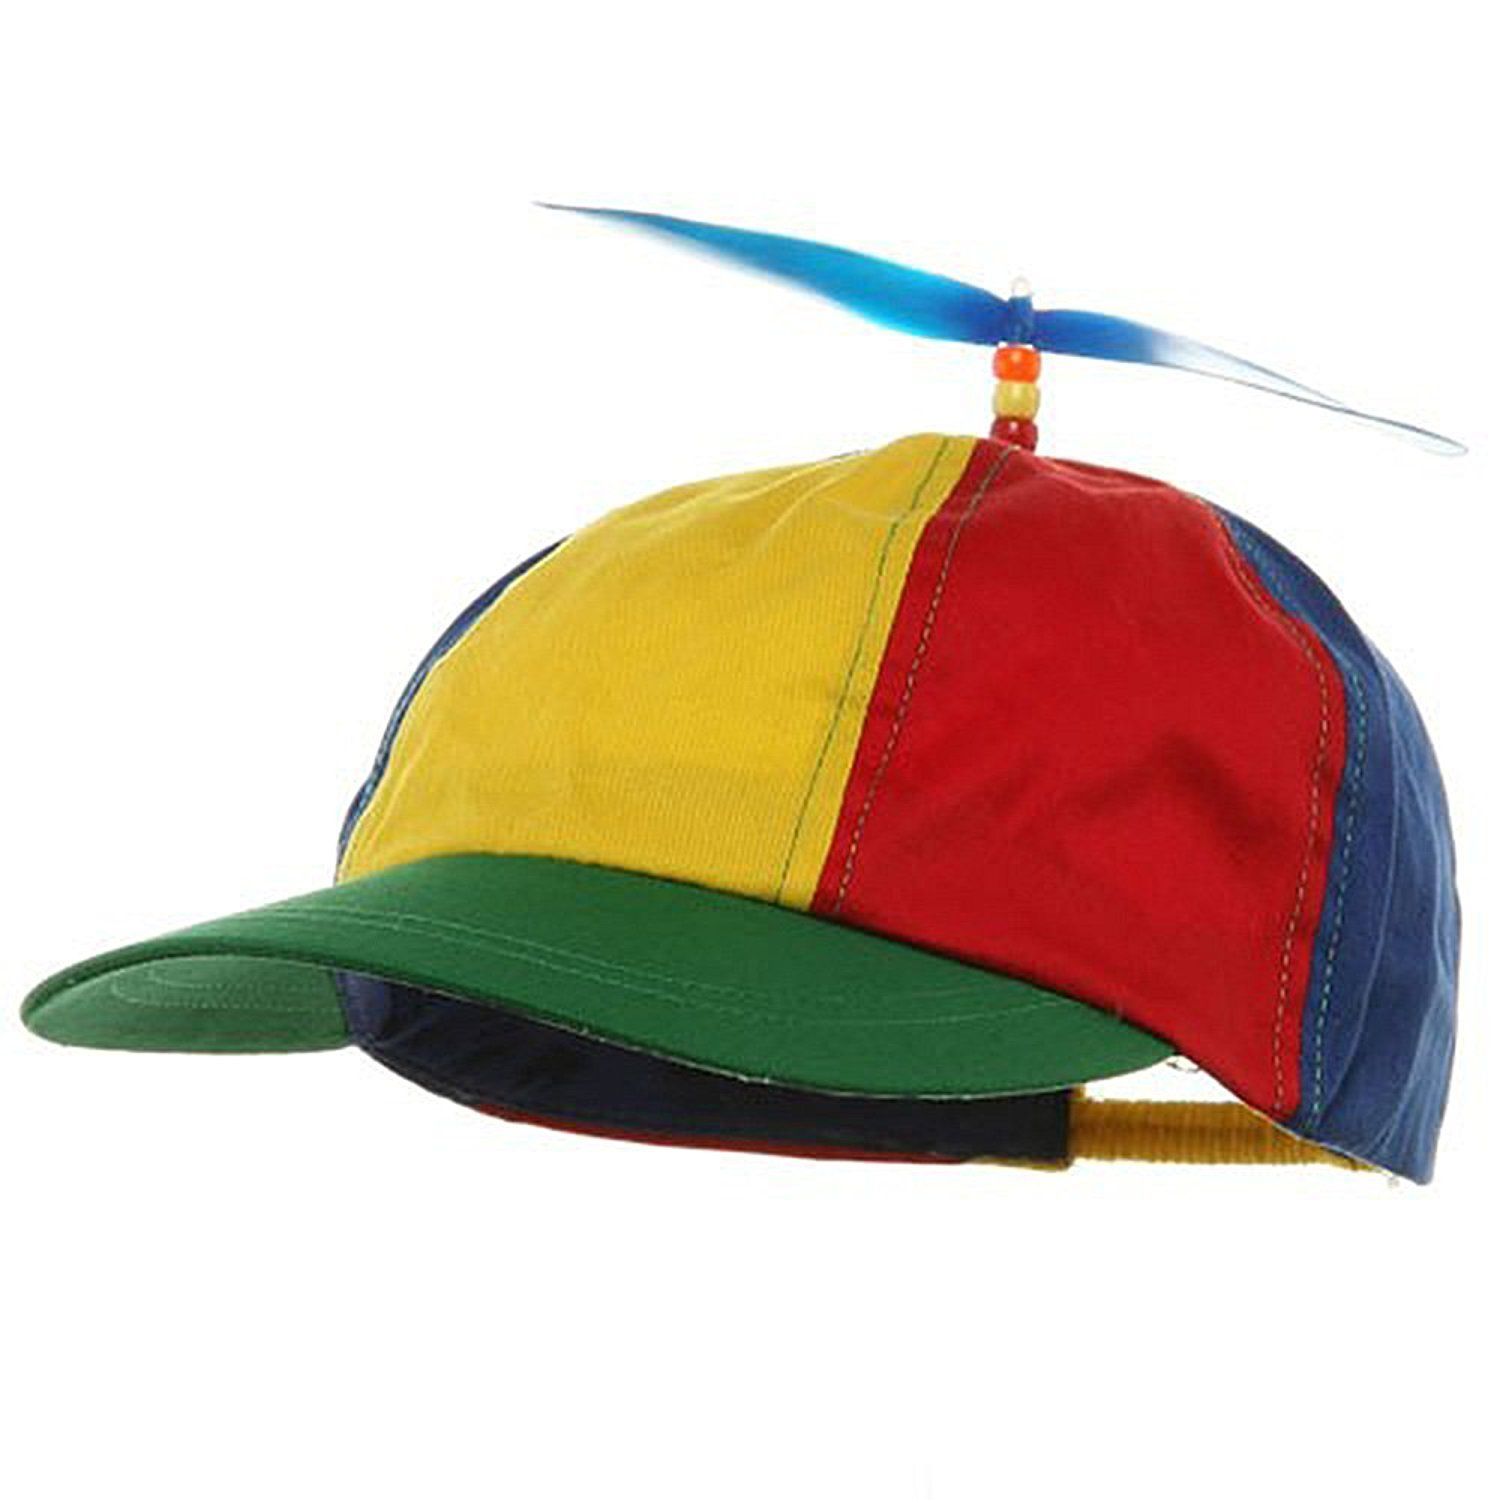 BLUE PROPELLER CAP HAT BEANIE ADULT HALLOWEEN COSTUME ACCESSORY